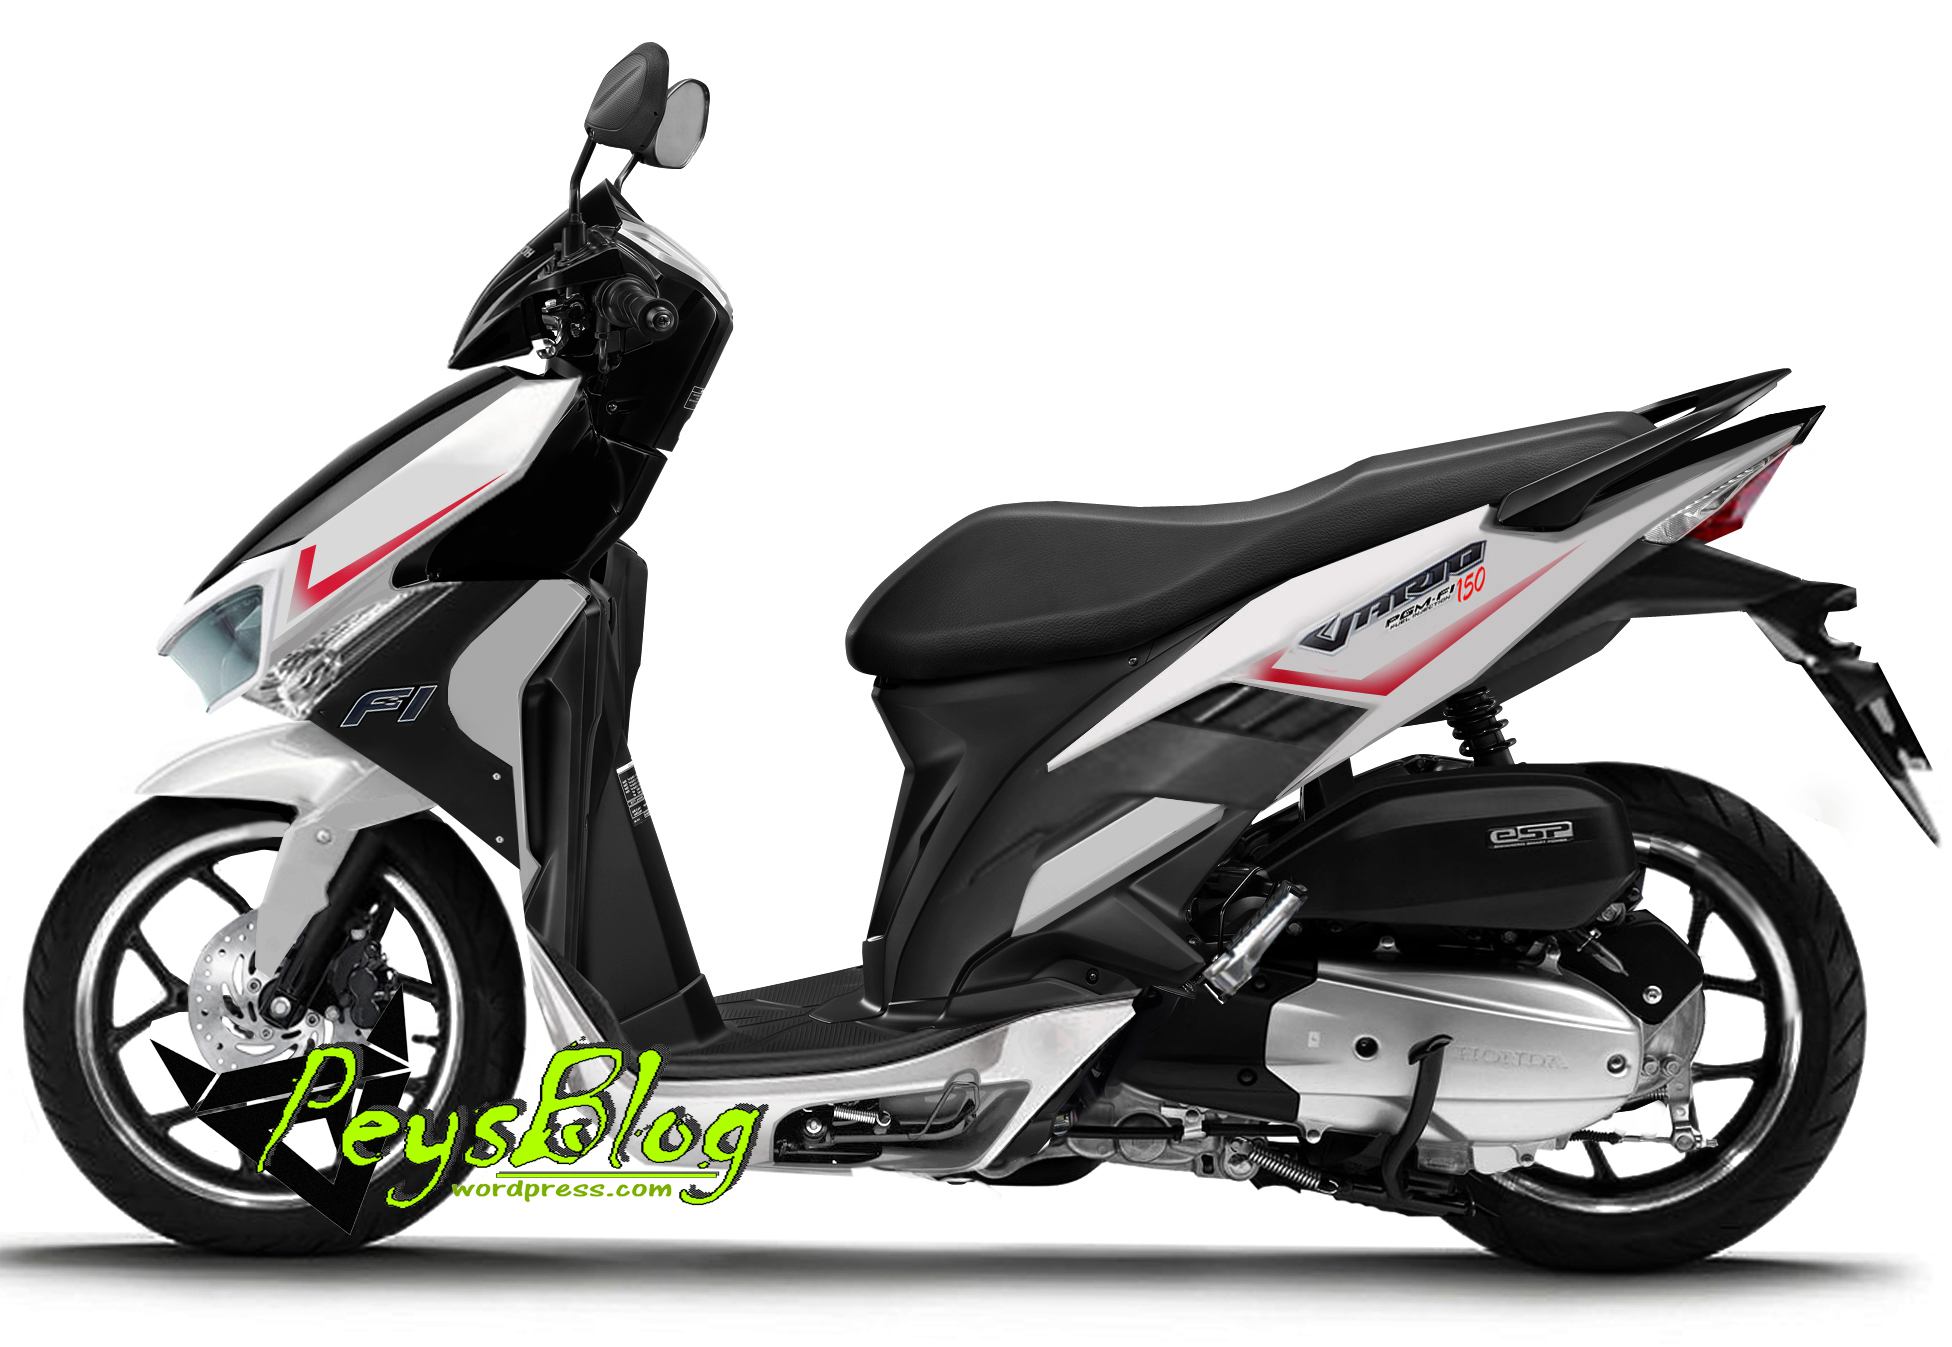 honda beat terbaru 2019 with Wow Vario 150 Stangnya Bakal Mirip Pcx on Review Modifikasi Motor Kawasaki Klx additionally Toyota C Hr Small Suv Gets Detailed Interior Revealed together with Honda Pcx 150 together with The 2013 Chevrolet Trax Mini Crossover Is Not  ing Here moreover Yamaha Yzf R25 2017 Racing Blue New.